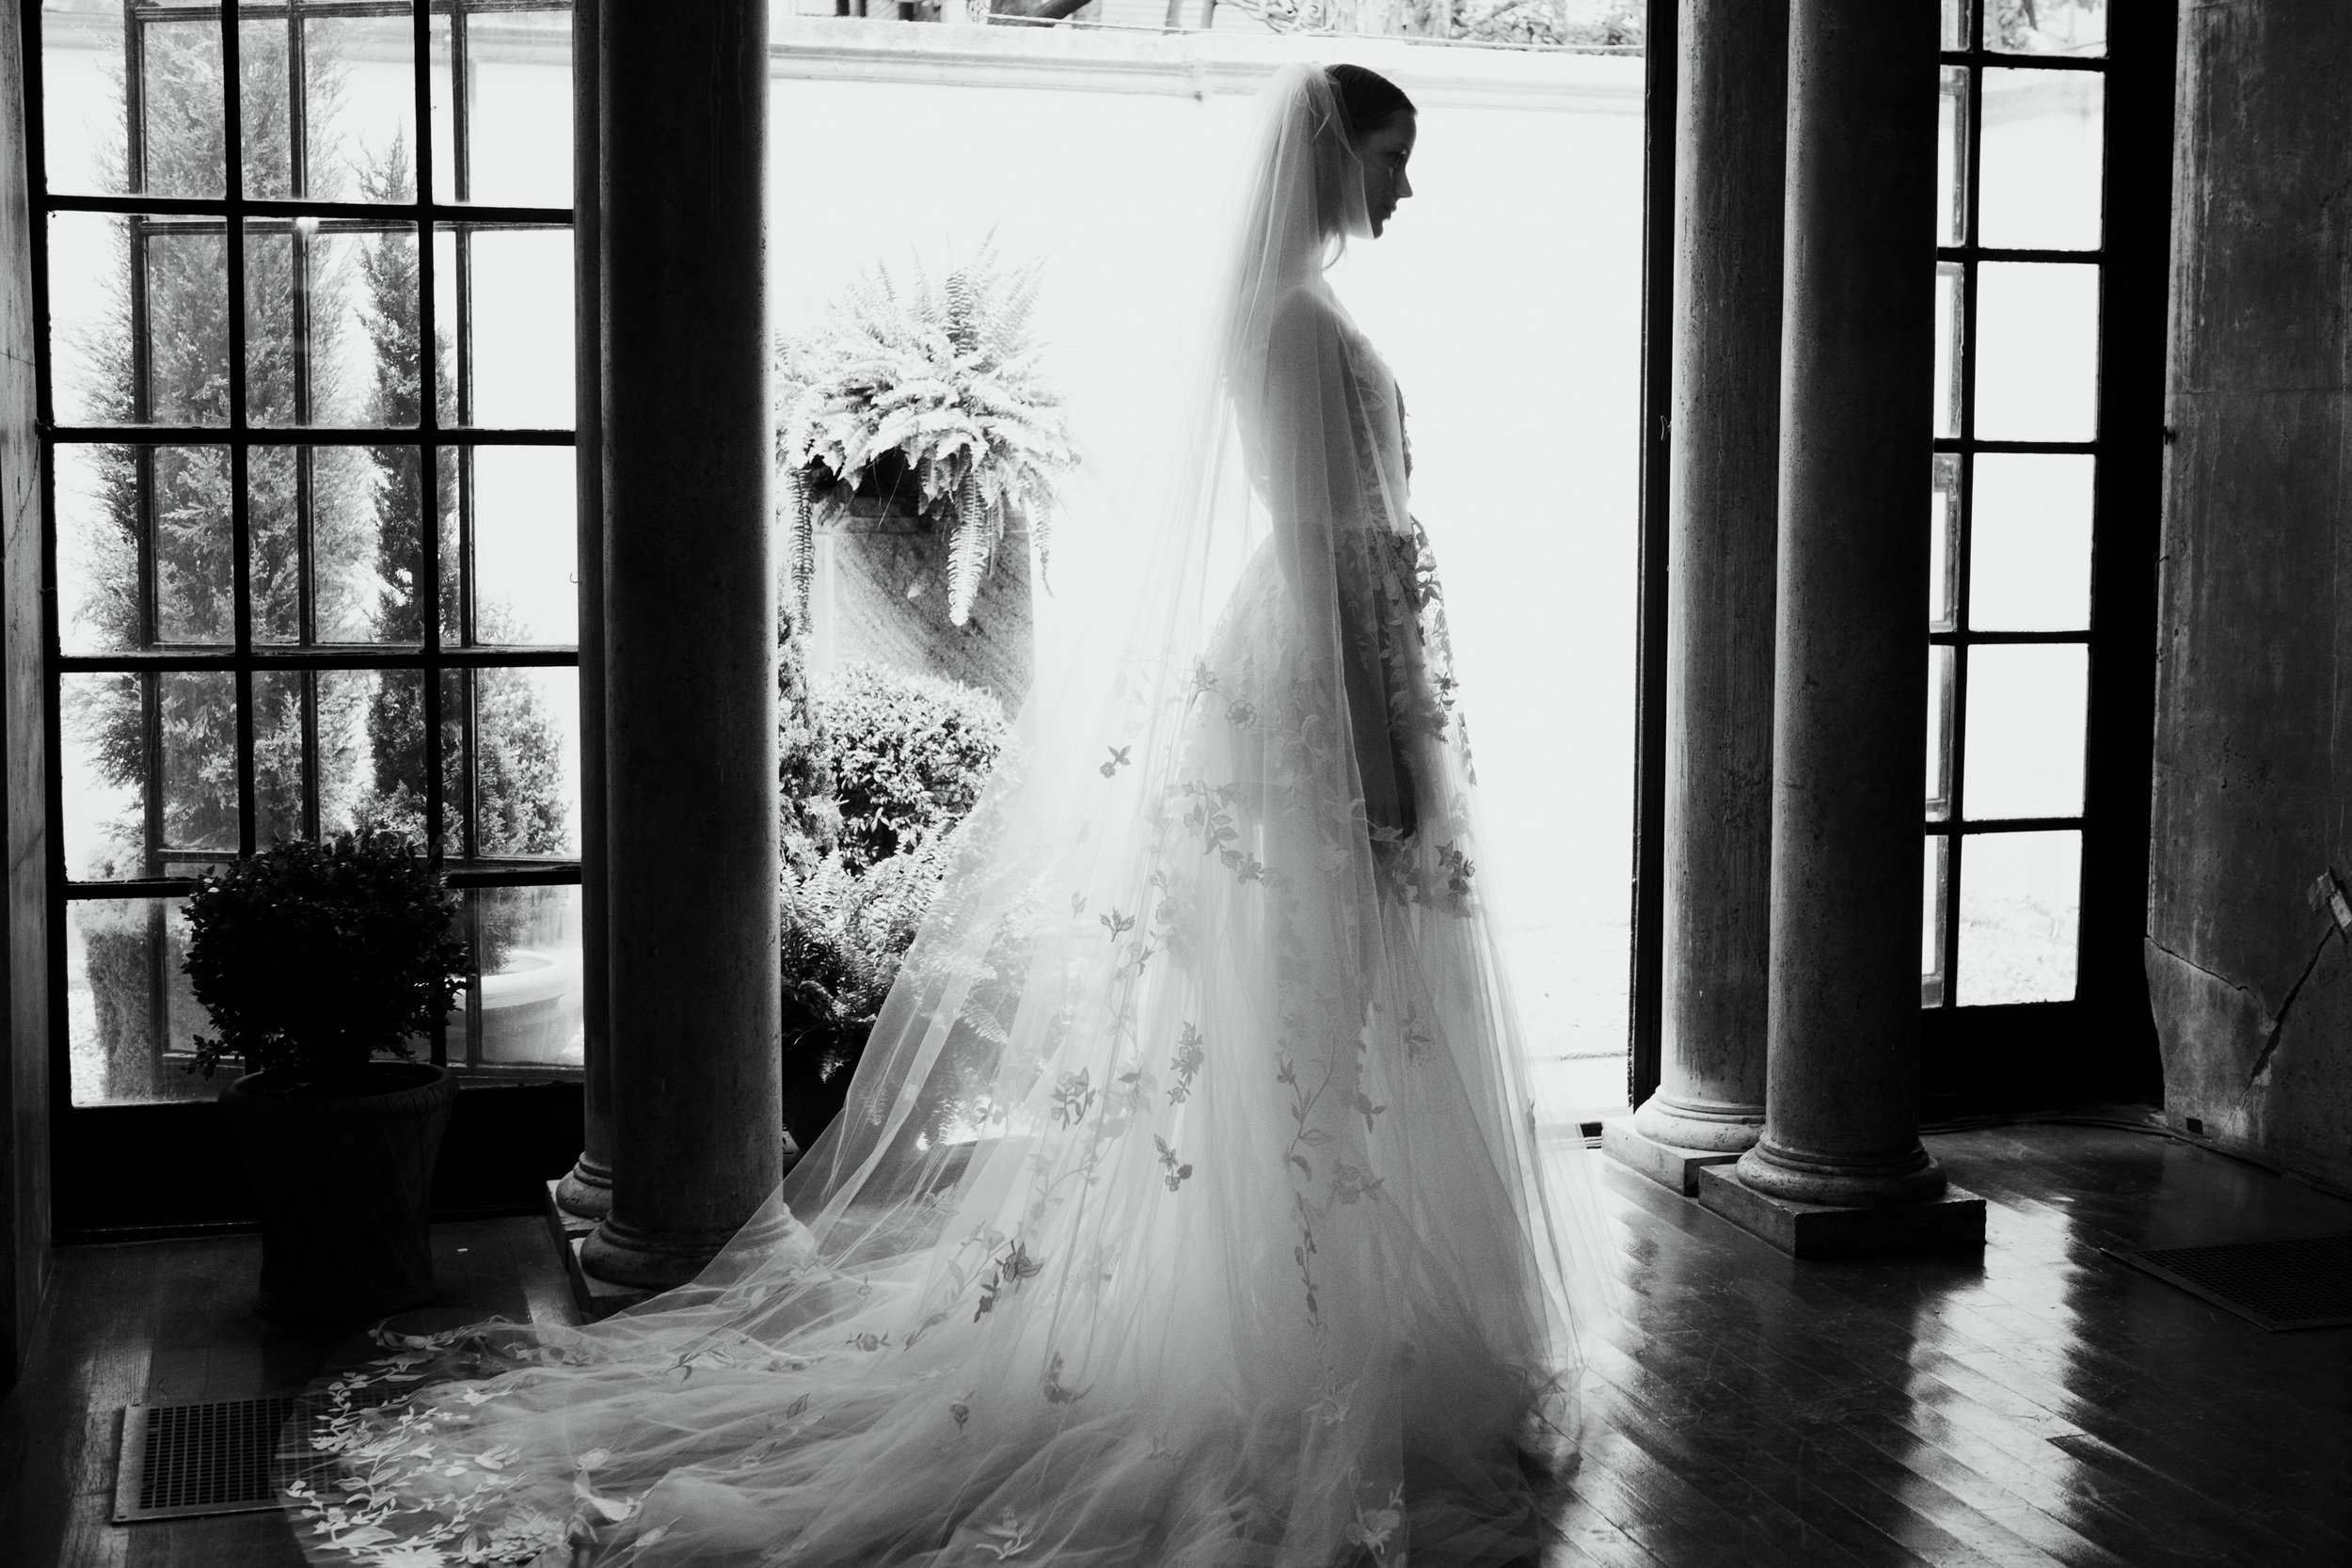 greenberg_ODLR_Bridal_052218-1445-2.jpg